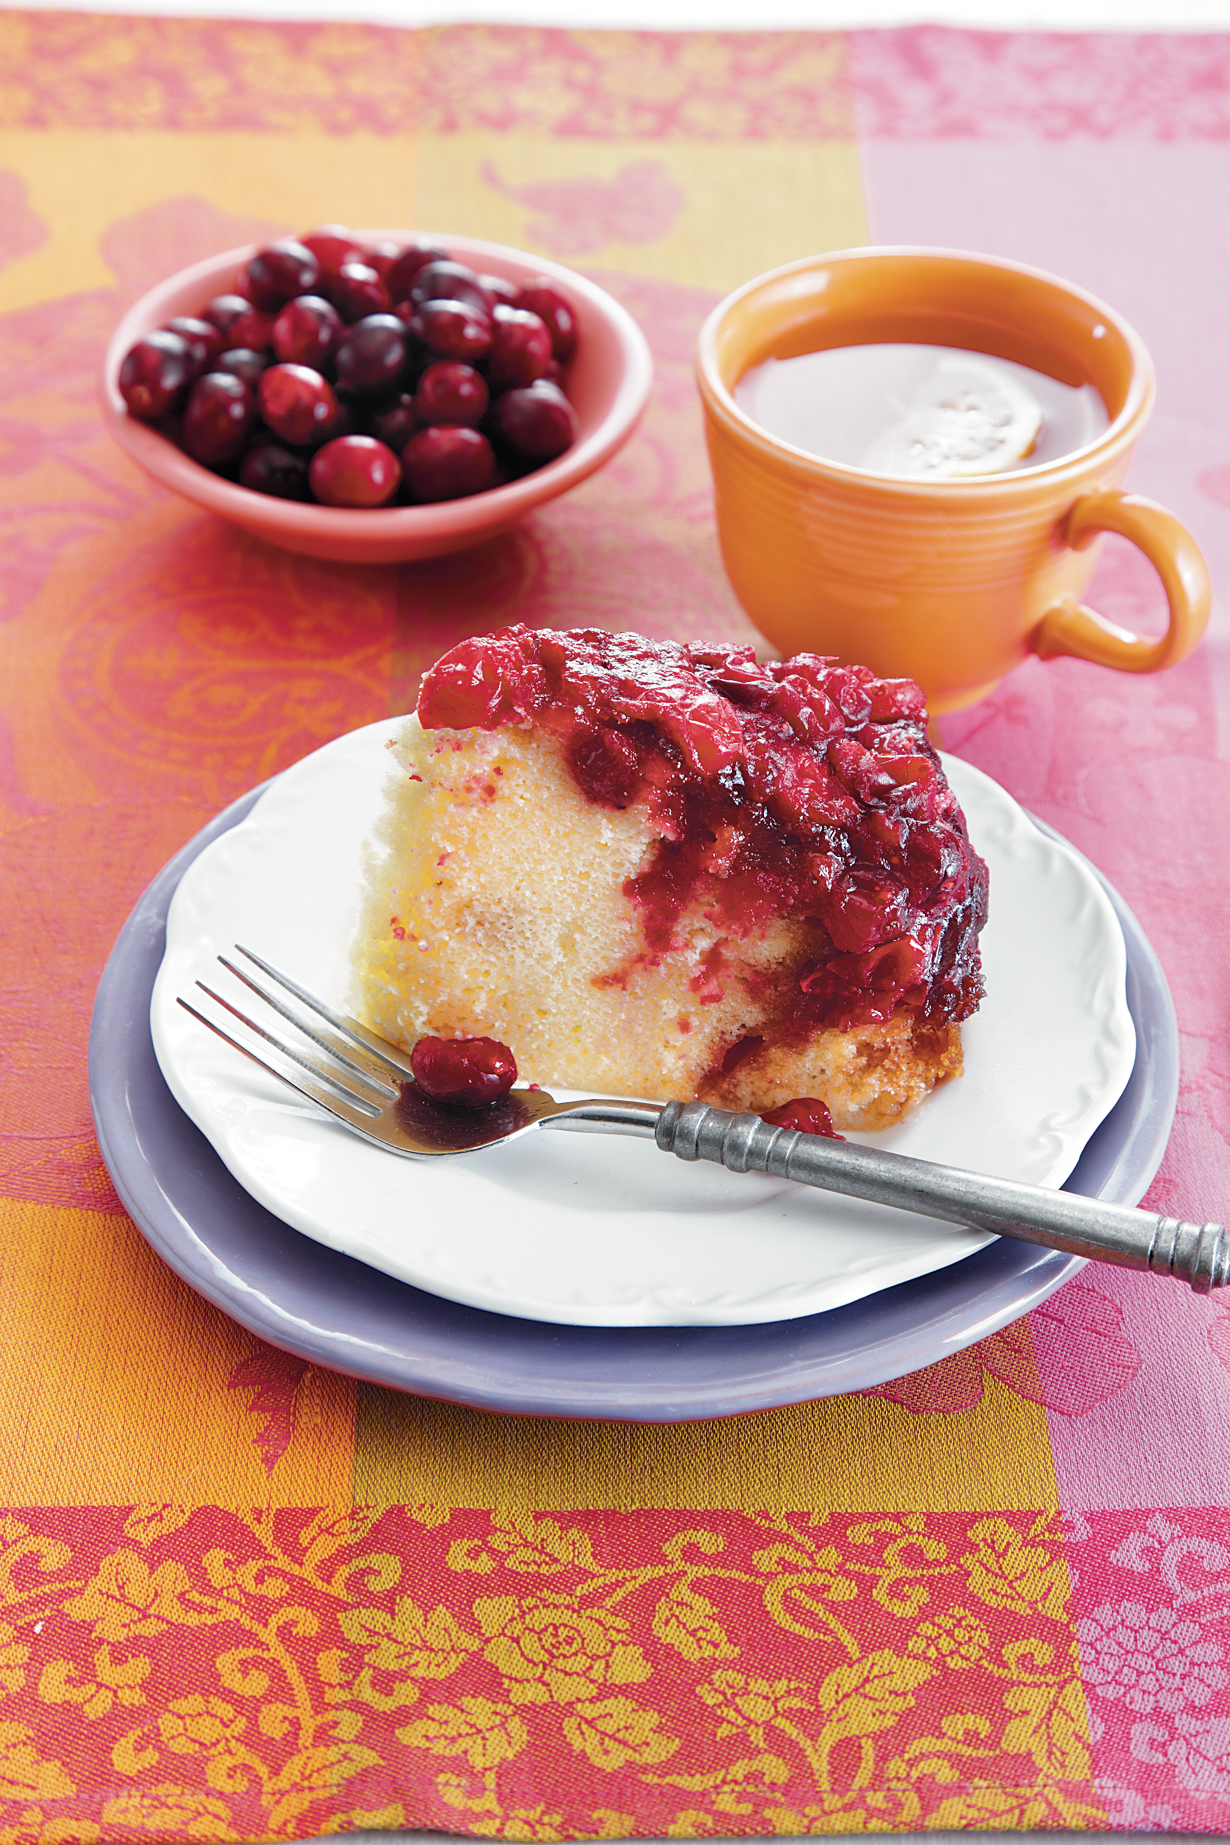 How To Get Cakes To Rise Evenly Using Sugar